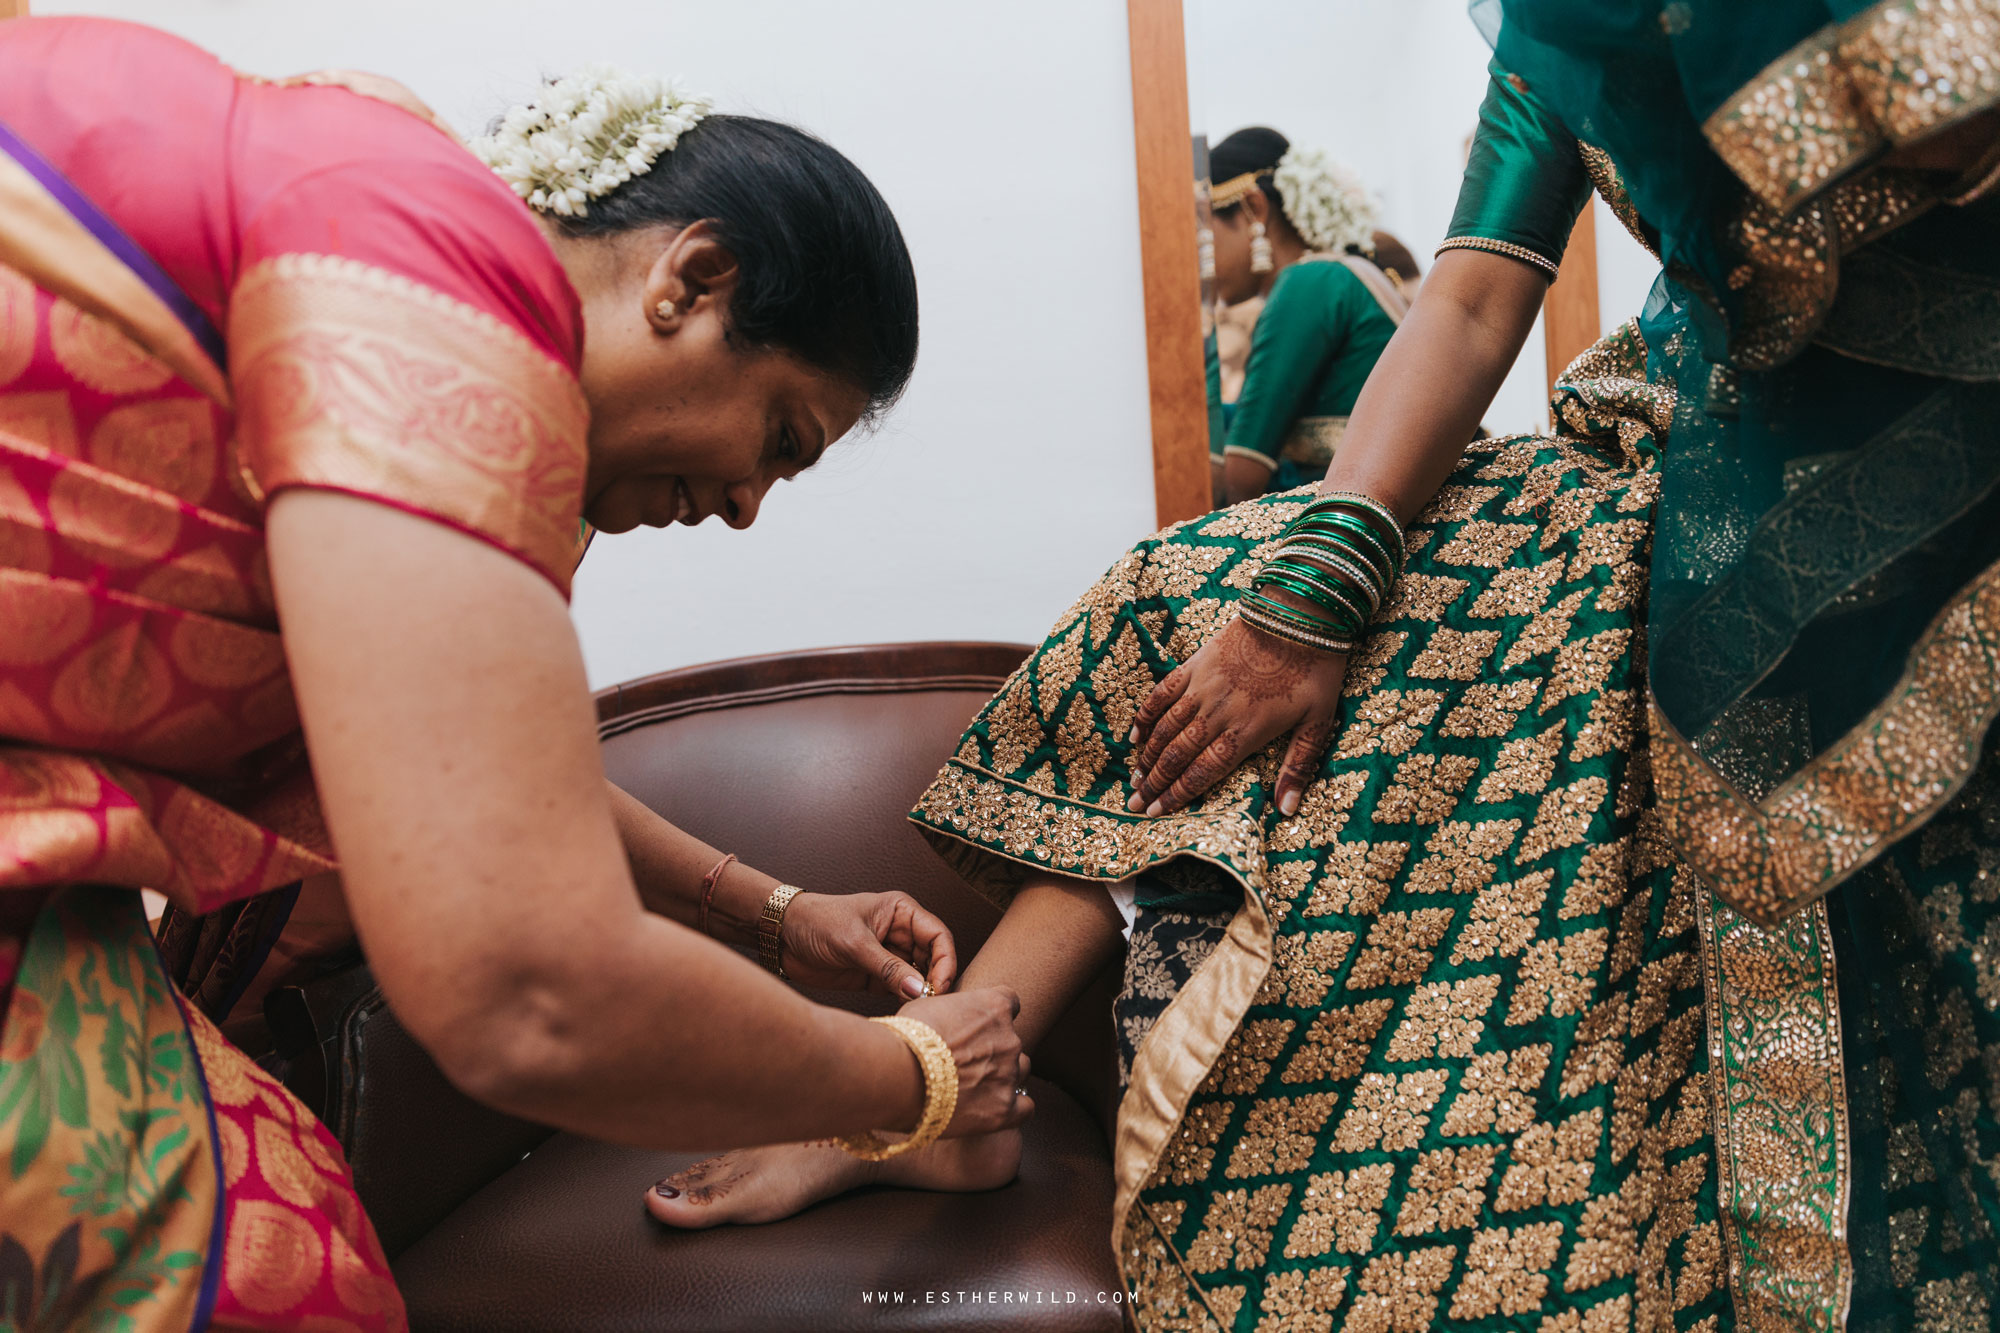 Northbrook_Park_Farnham_Surrey_London_Wedding_Hindu_Fusion_Esther_Wild_Photographer_IMG_3049.jpg